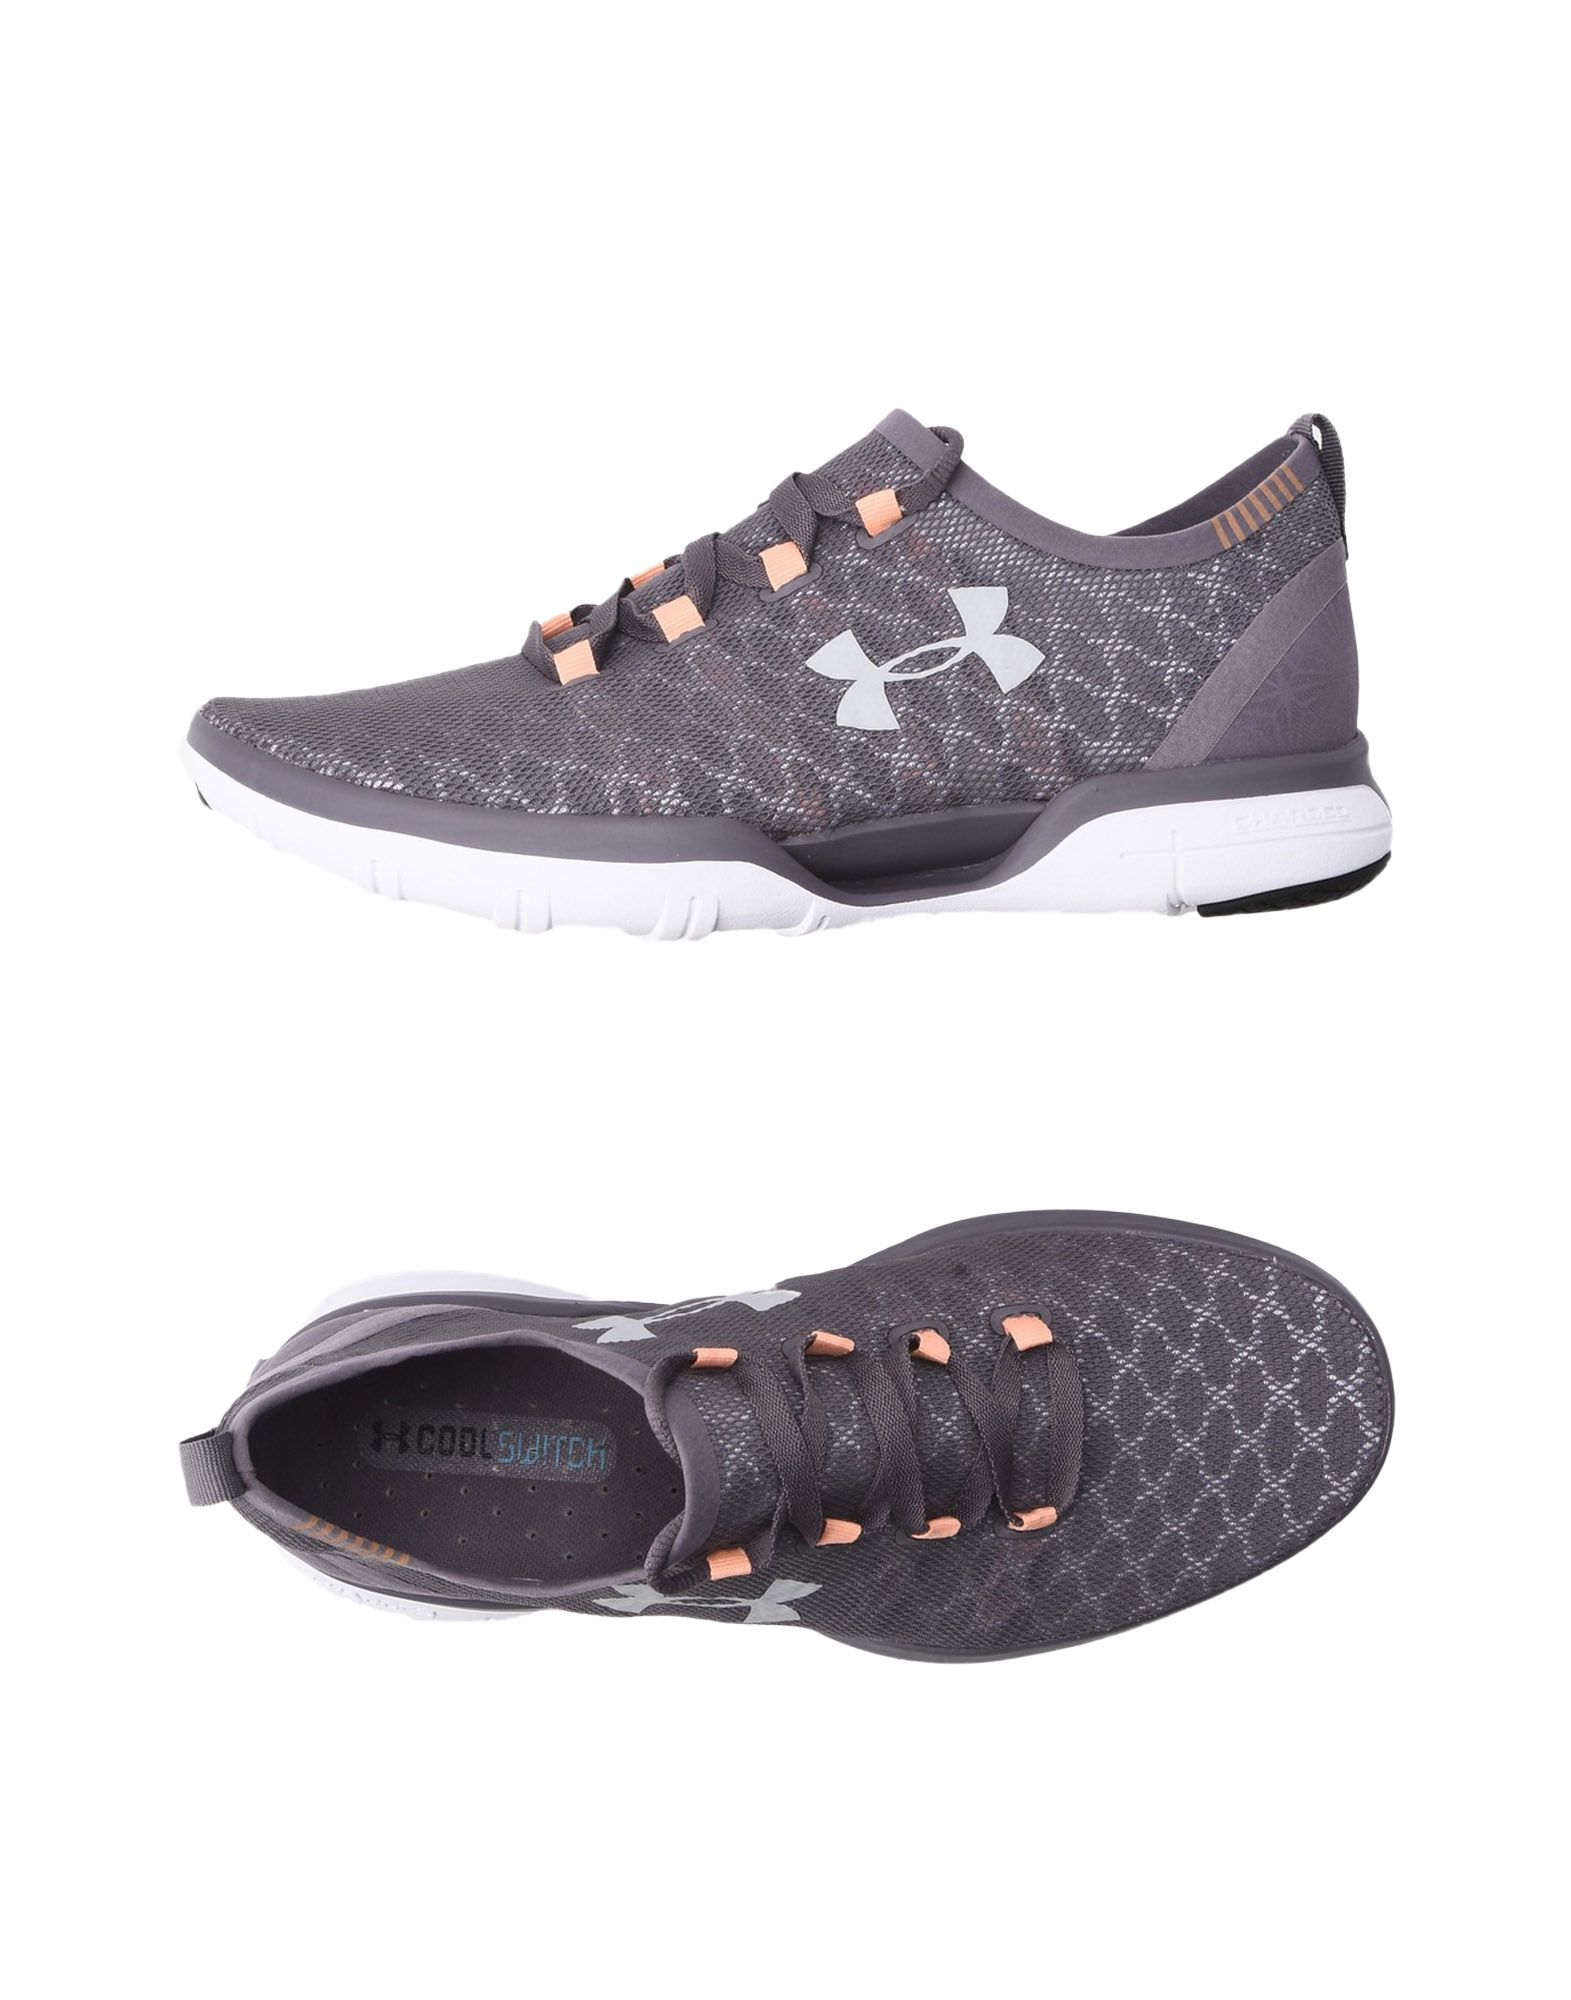 Baskets Under Armour Ua W Charged Coolswitch Run - Femme - Baskets Under Armour Noir Meilleur modèle de vente